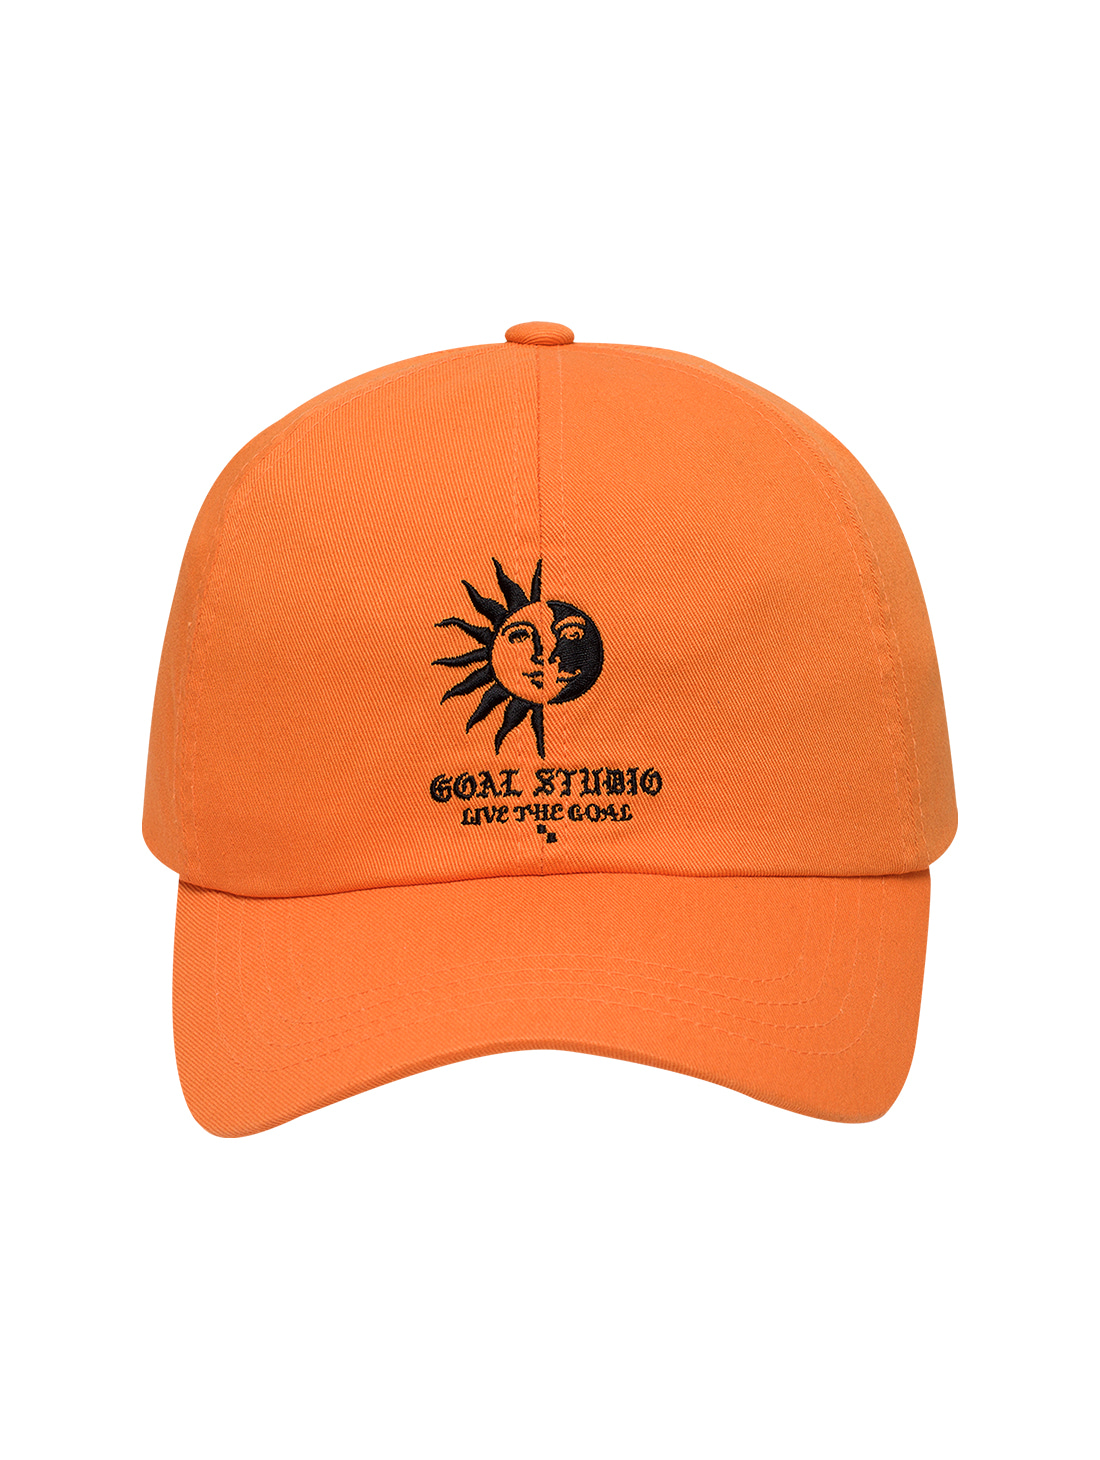 MC BALL CAP - ORANGE